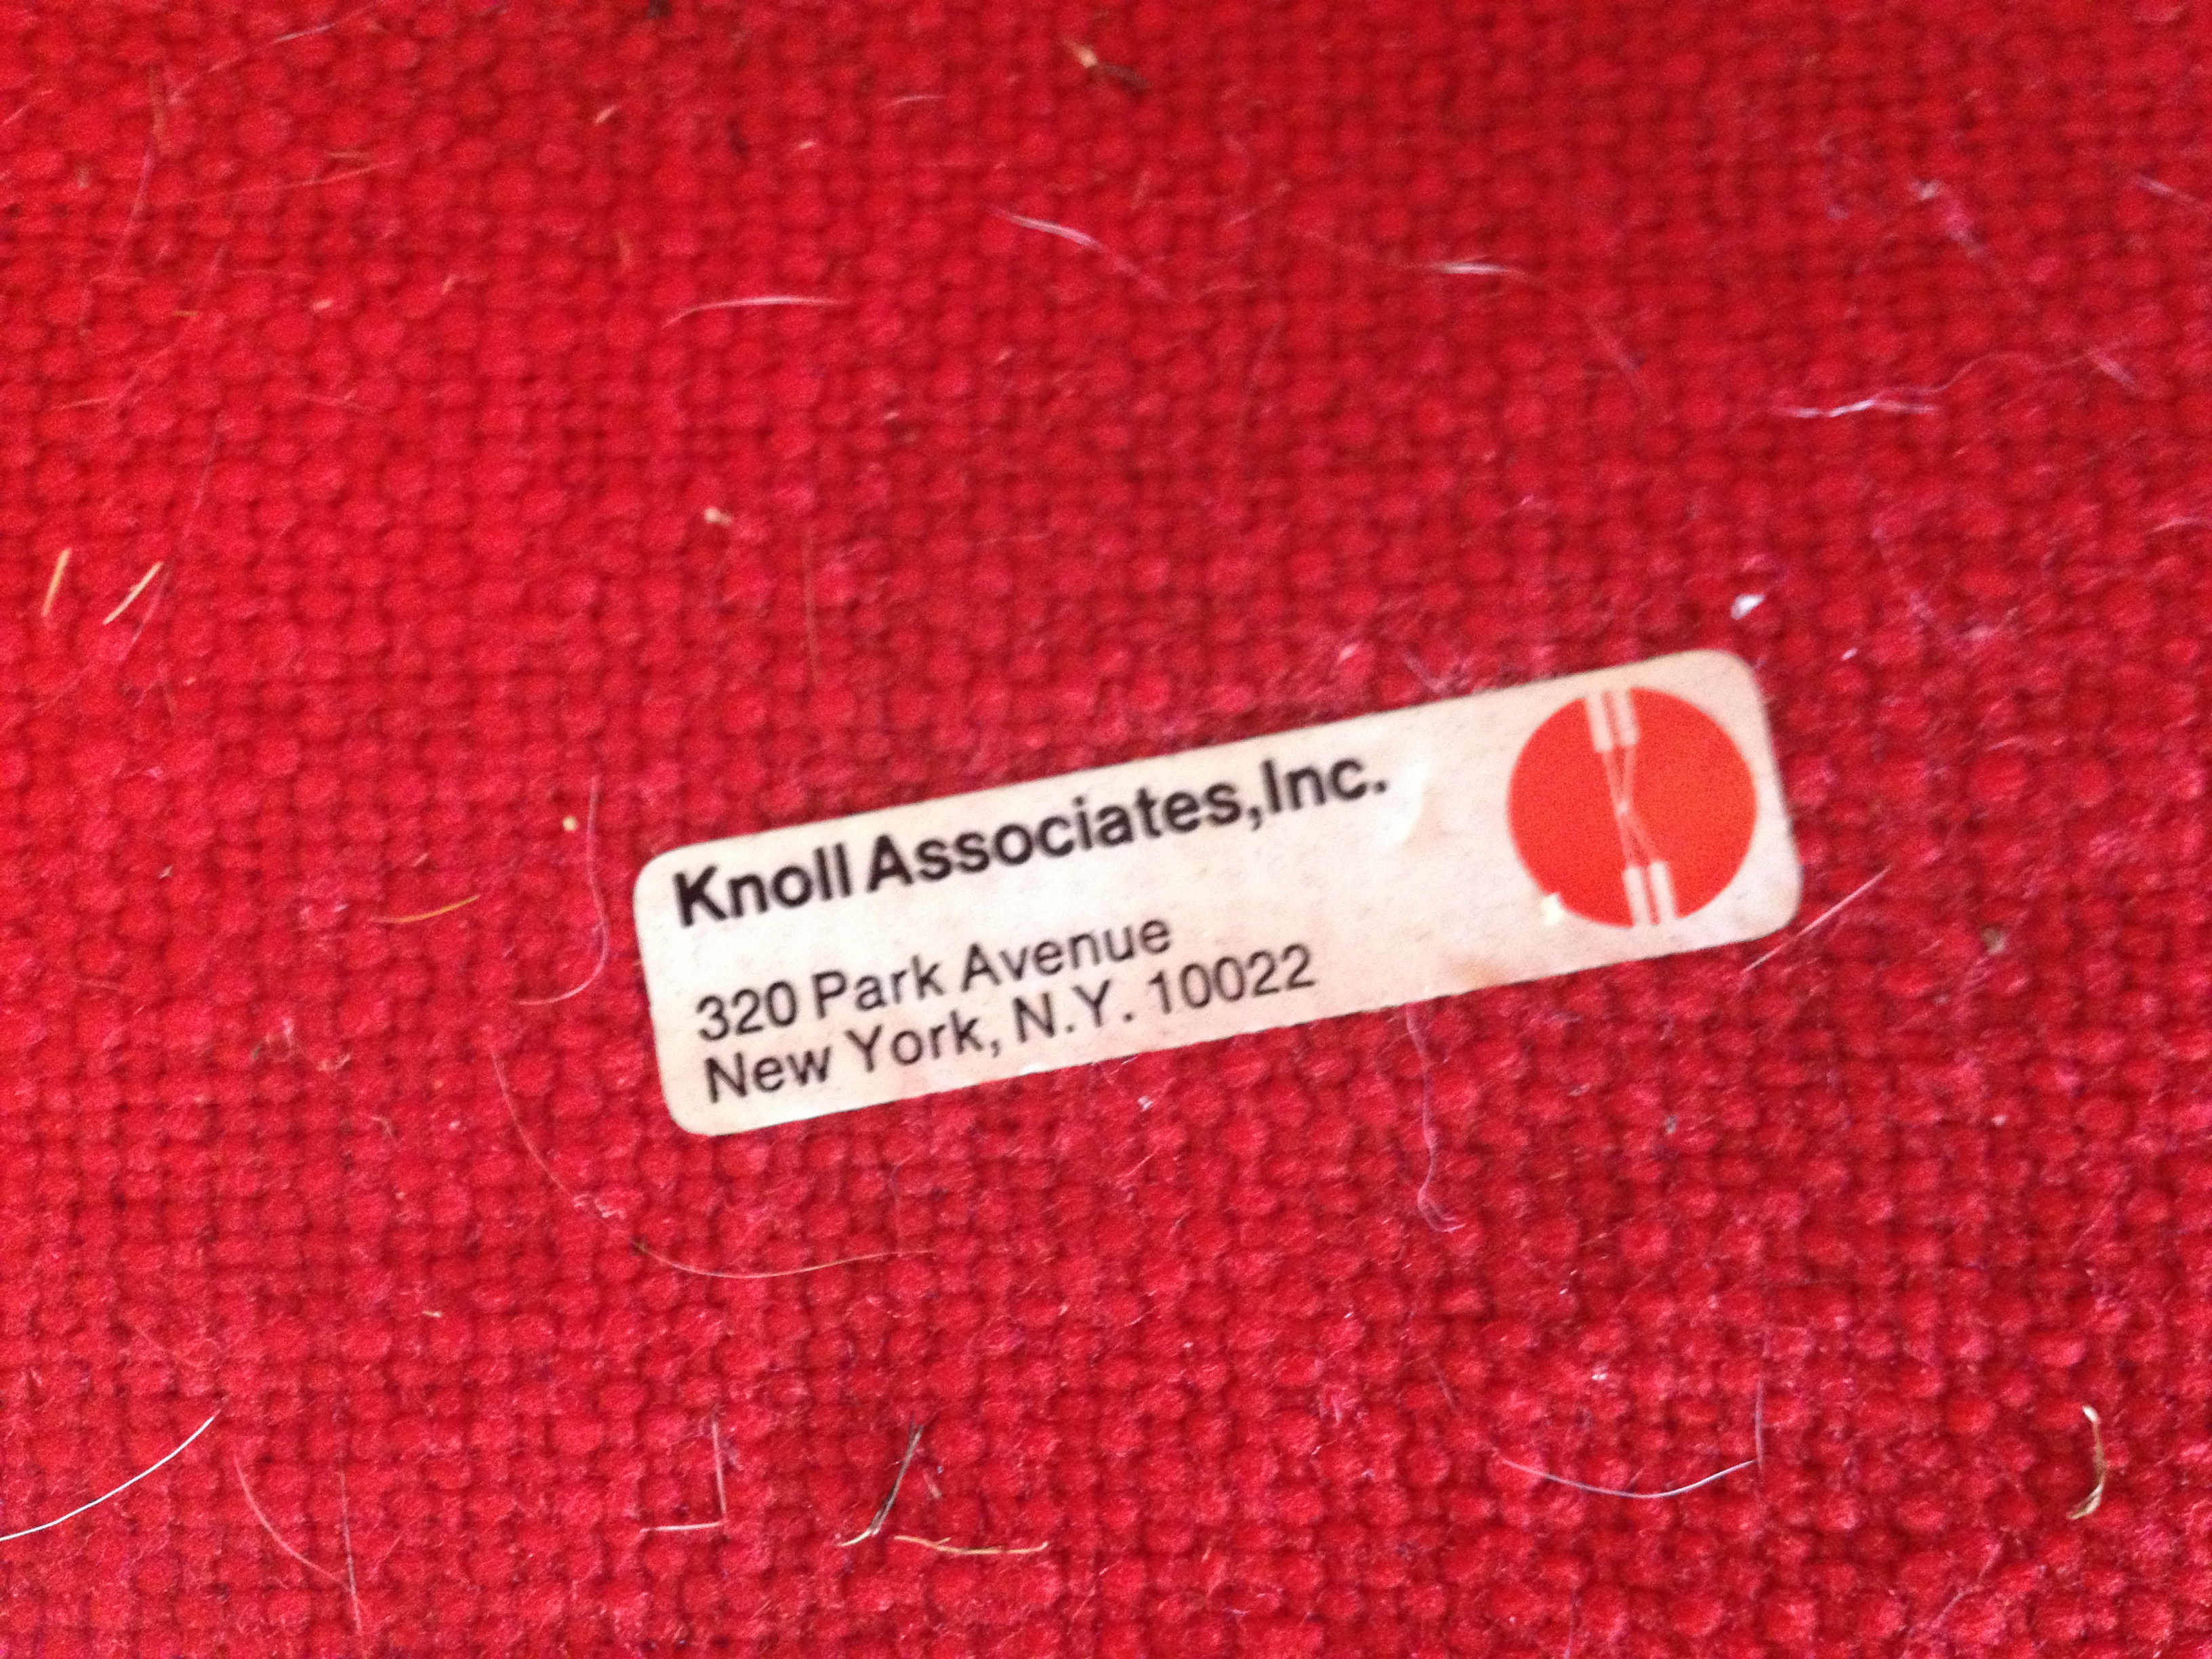 In my online research, I learned that this style of tag suggests the chair was made around 1959